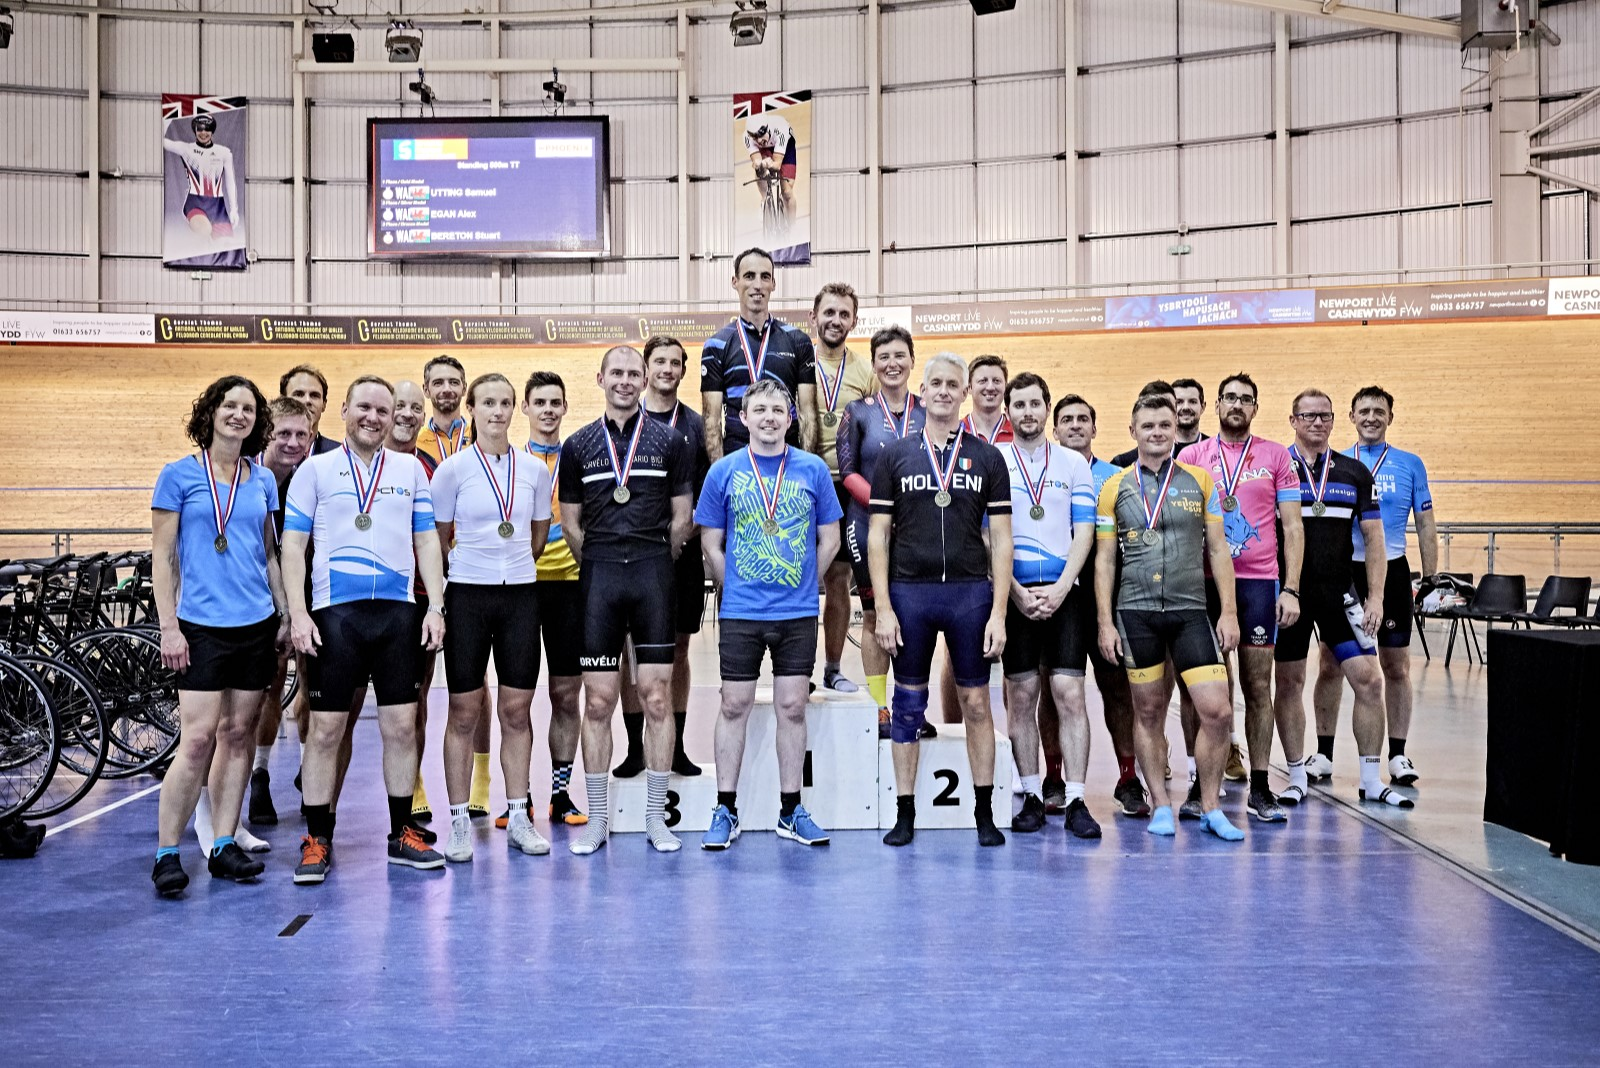 Group of people in cycling kit wearing medals